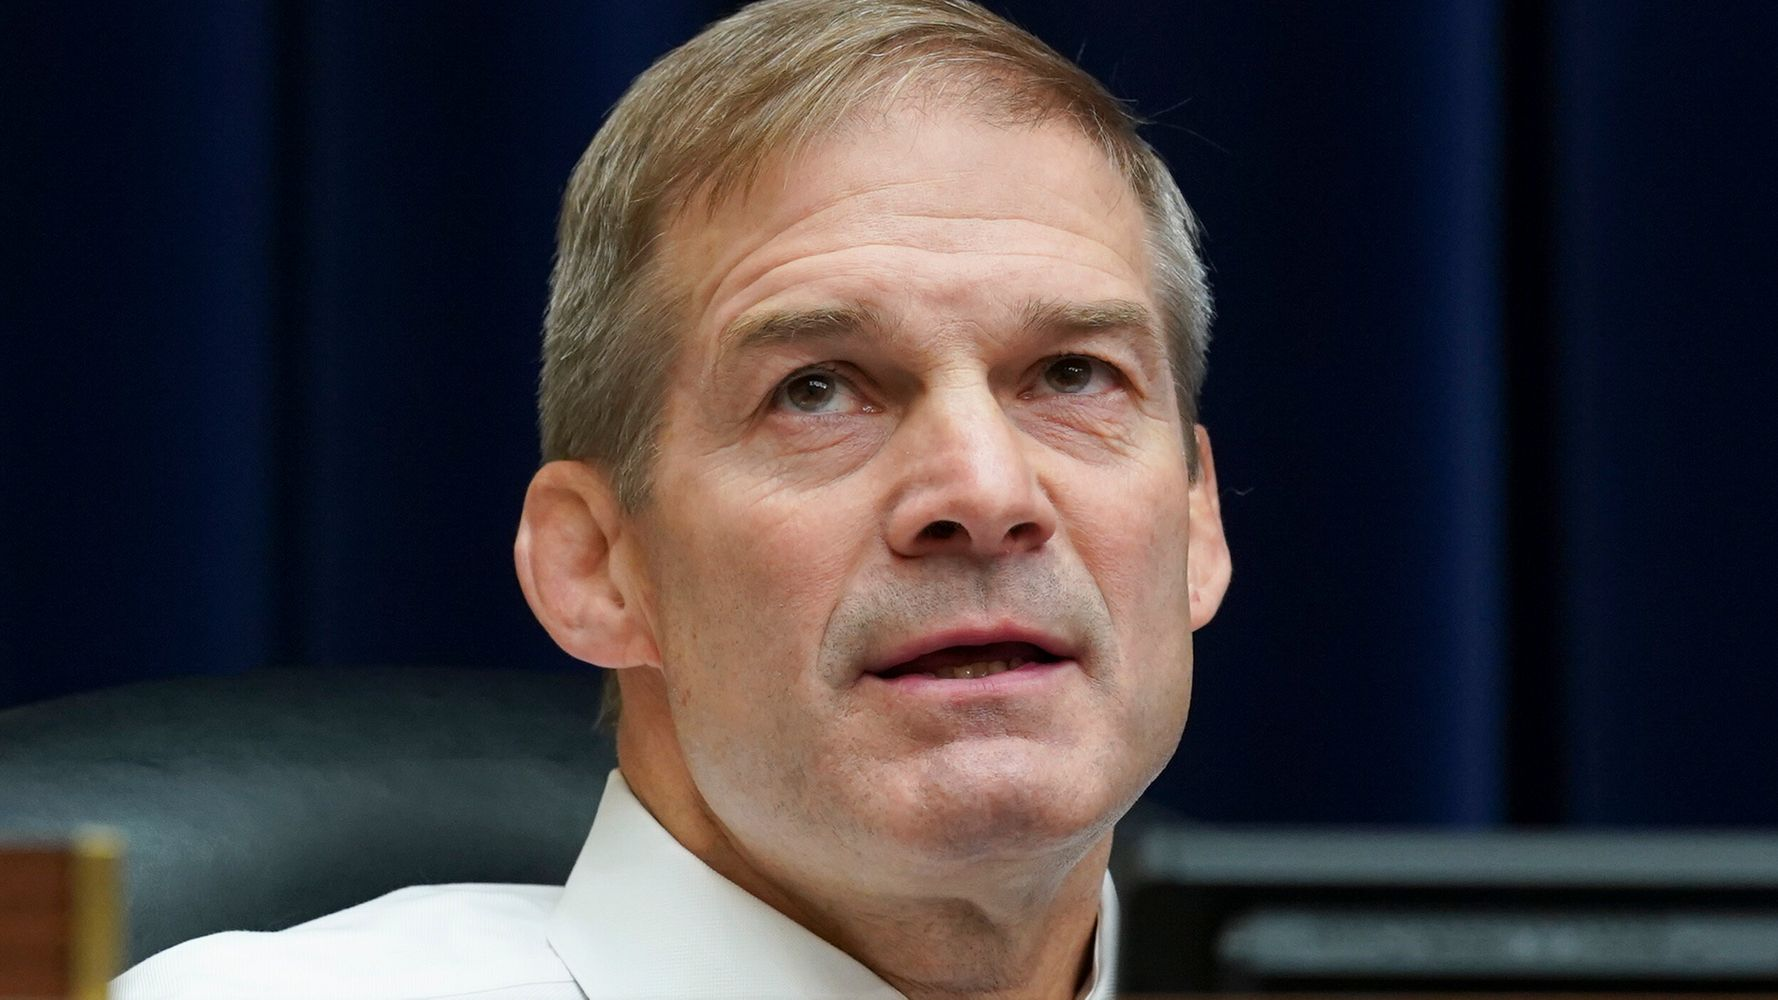 People Think Jim Jordan's Weird Tweet About Fauci And Christmas Is A Spoof. It's Not.